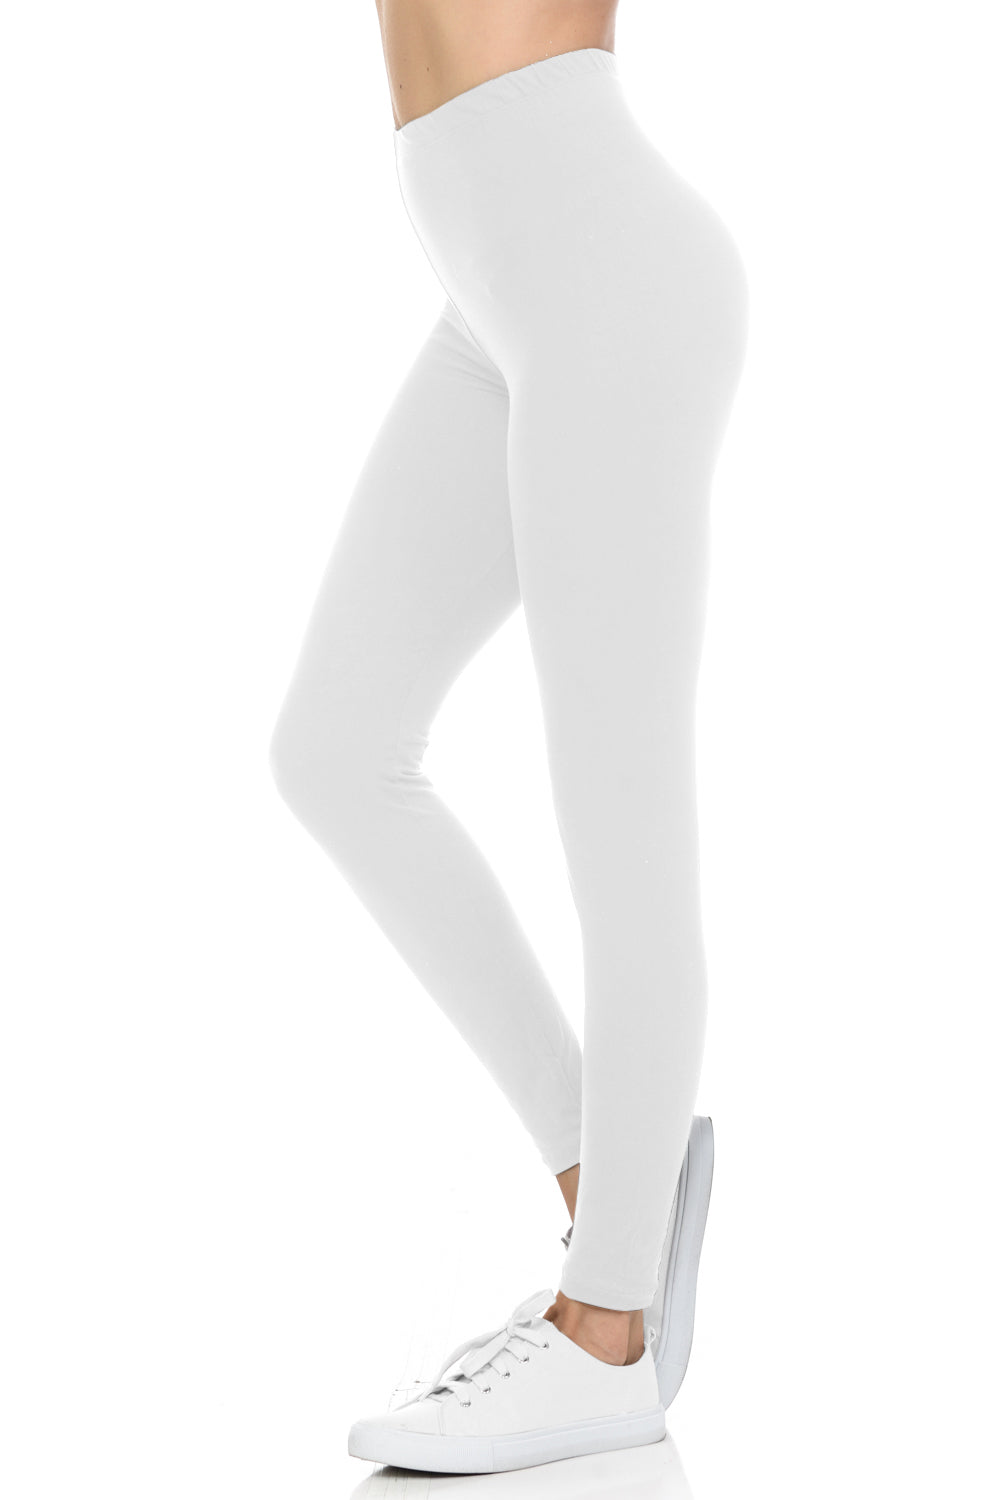 bluensquare LEGGINGS  for Juniors High Waist premium soft brushed Stretched Regular One Size-White